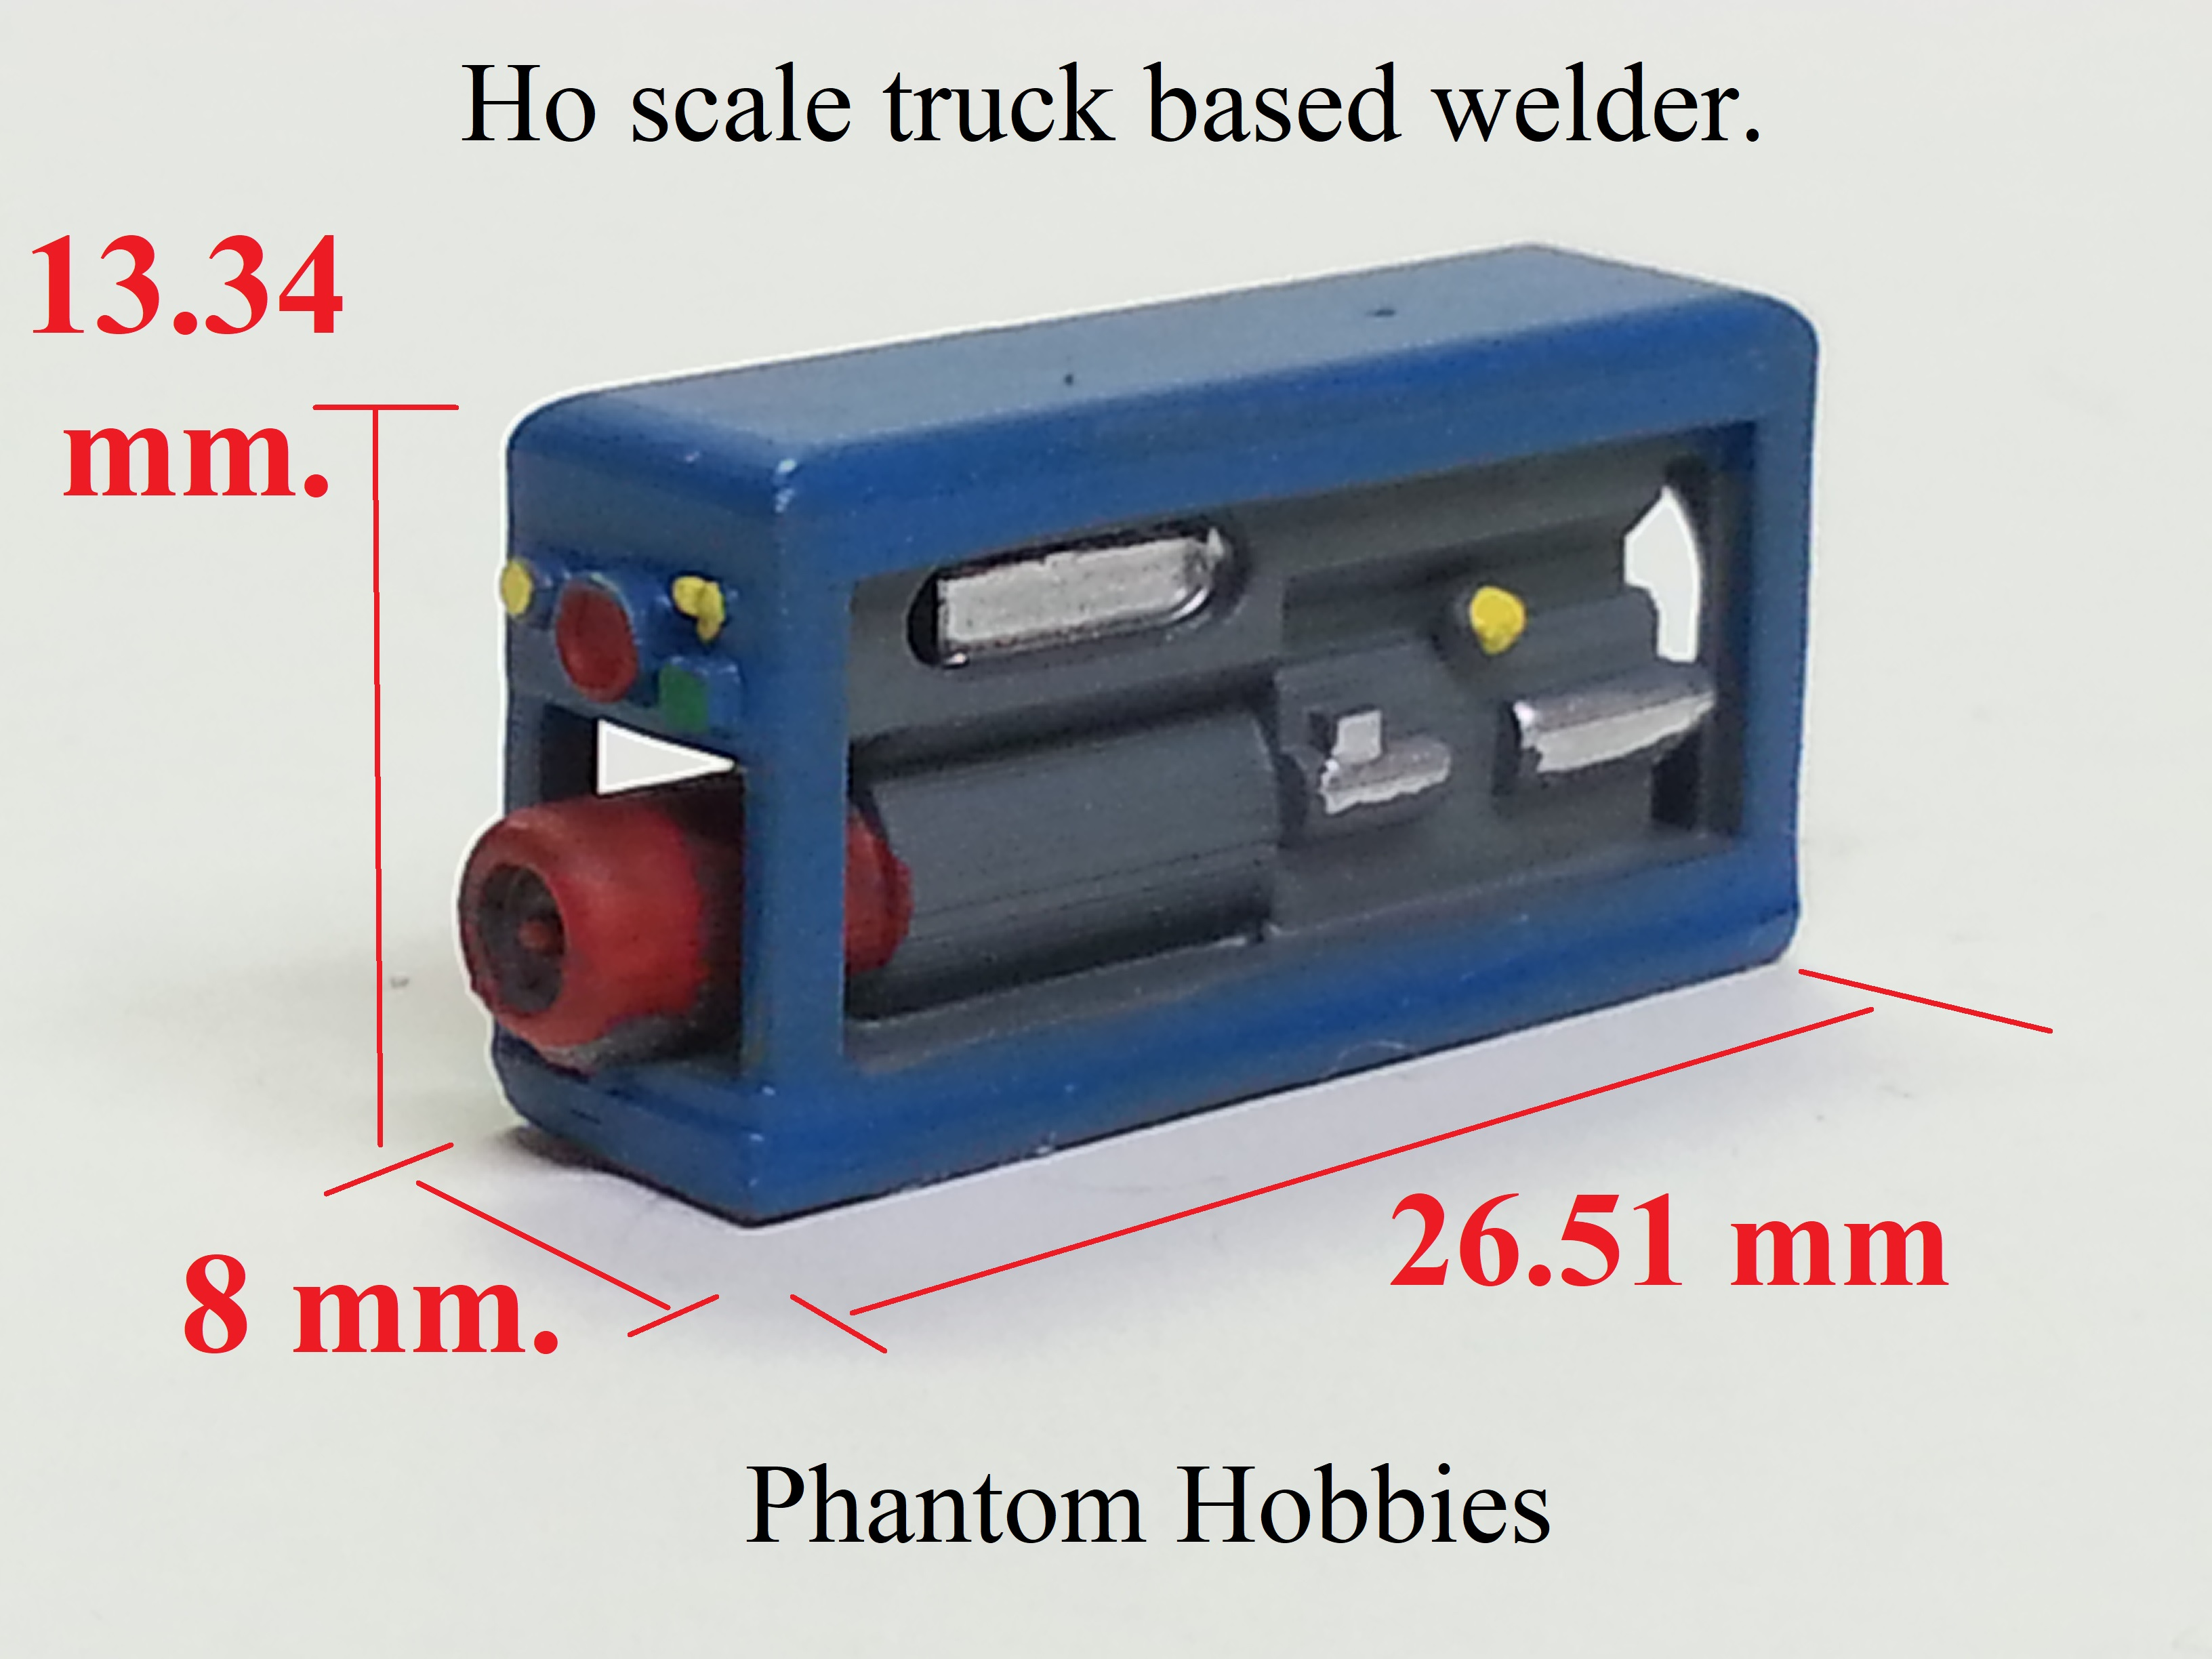 Ho scale truck based welder